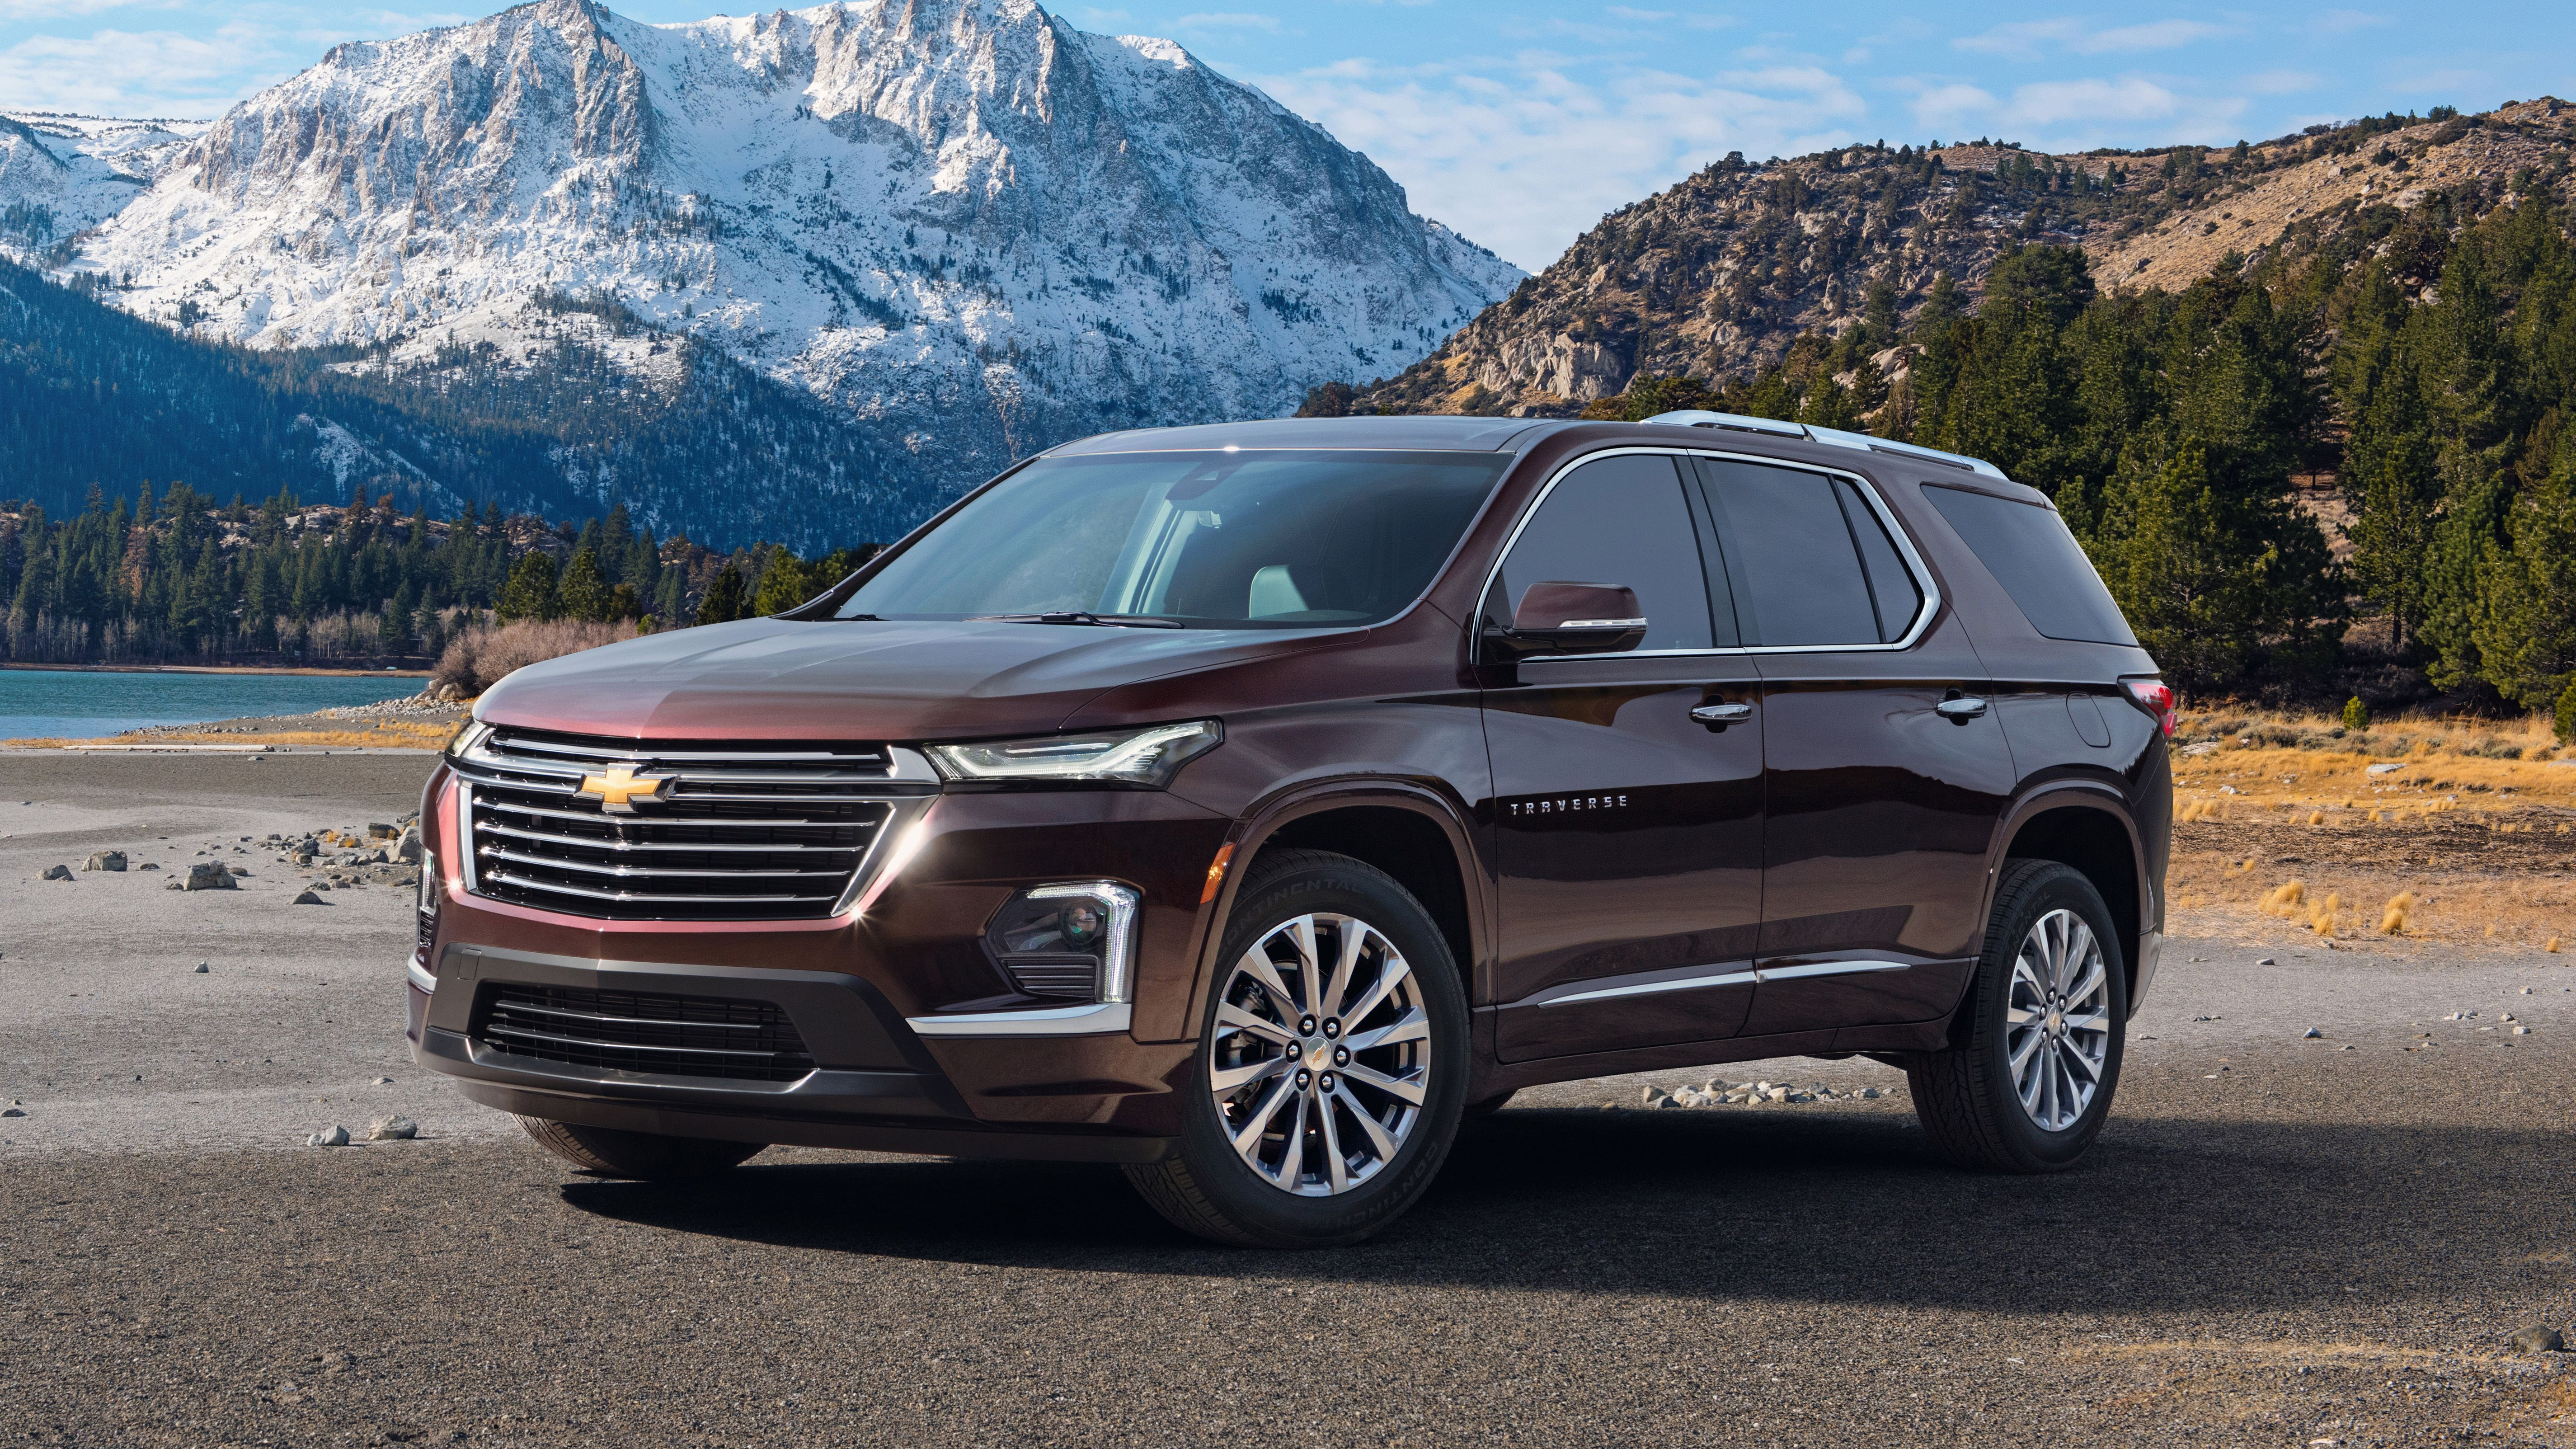 2021 Chevy Traverse Debuts With Minimal Changes But Better Styling In 2020 Chevrolet Traverse Chevrolet Chevy